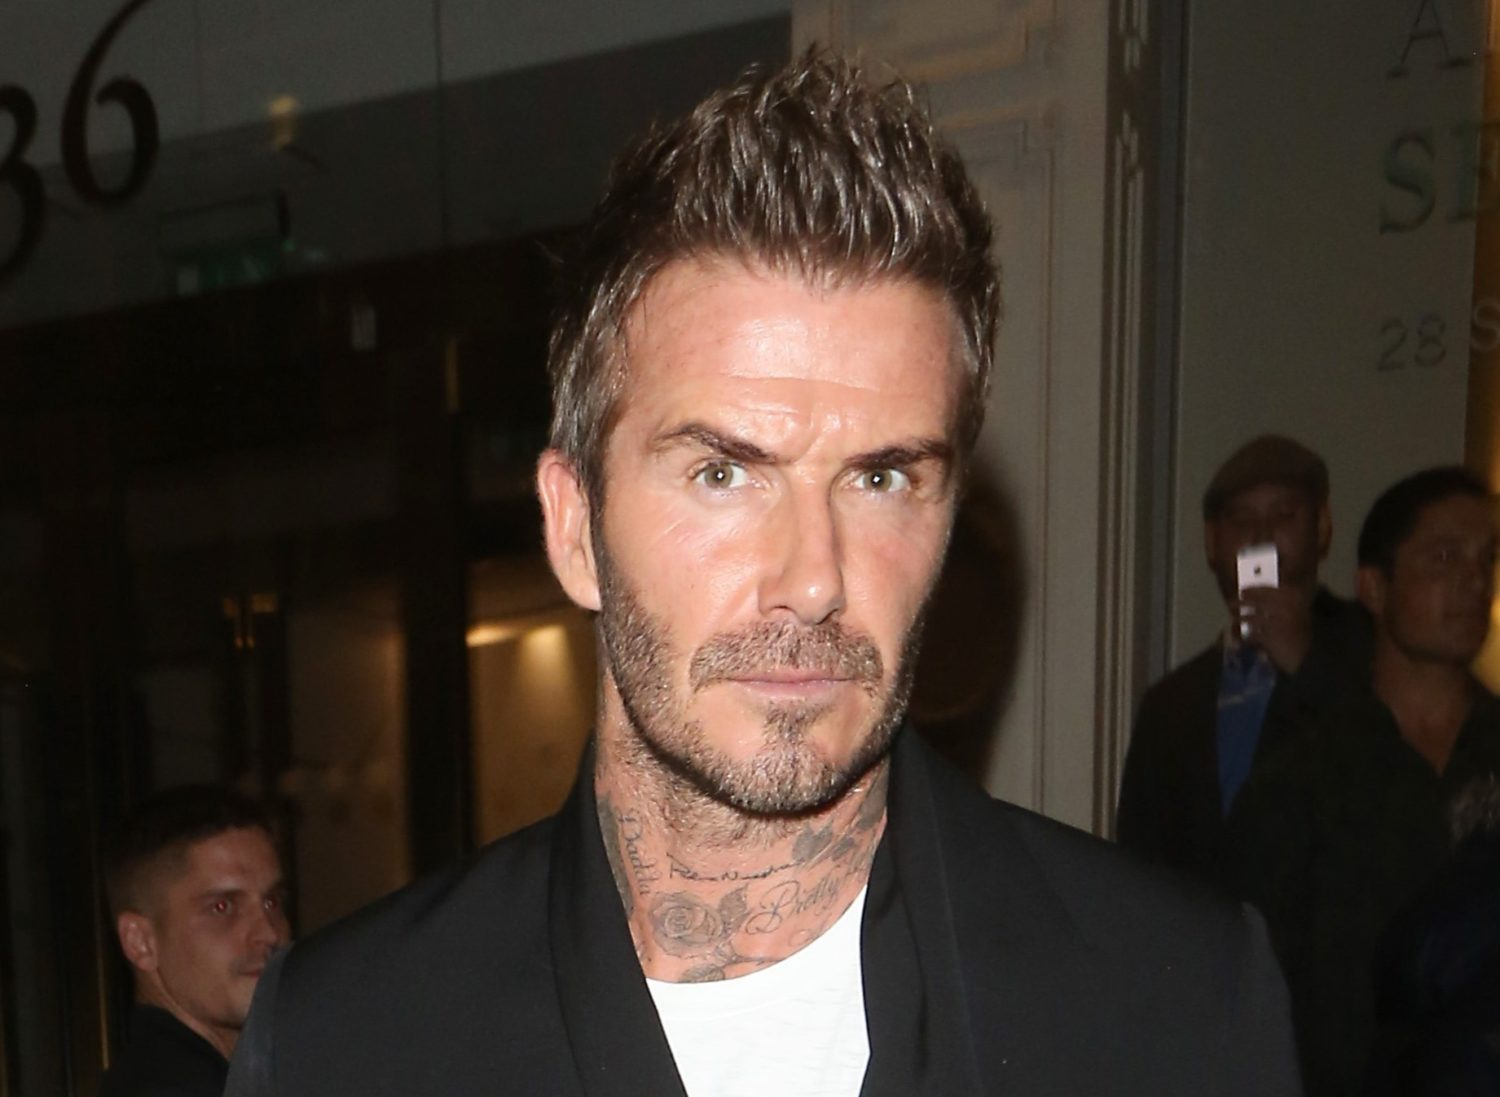 David Beckham 'makes hour round trip to pick up fish and chips for family'